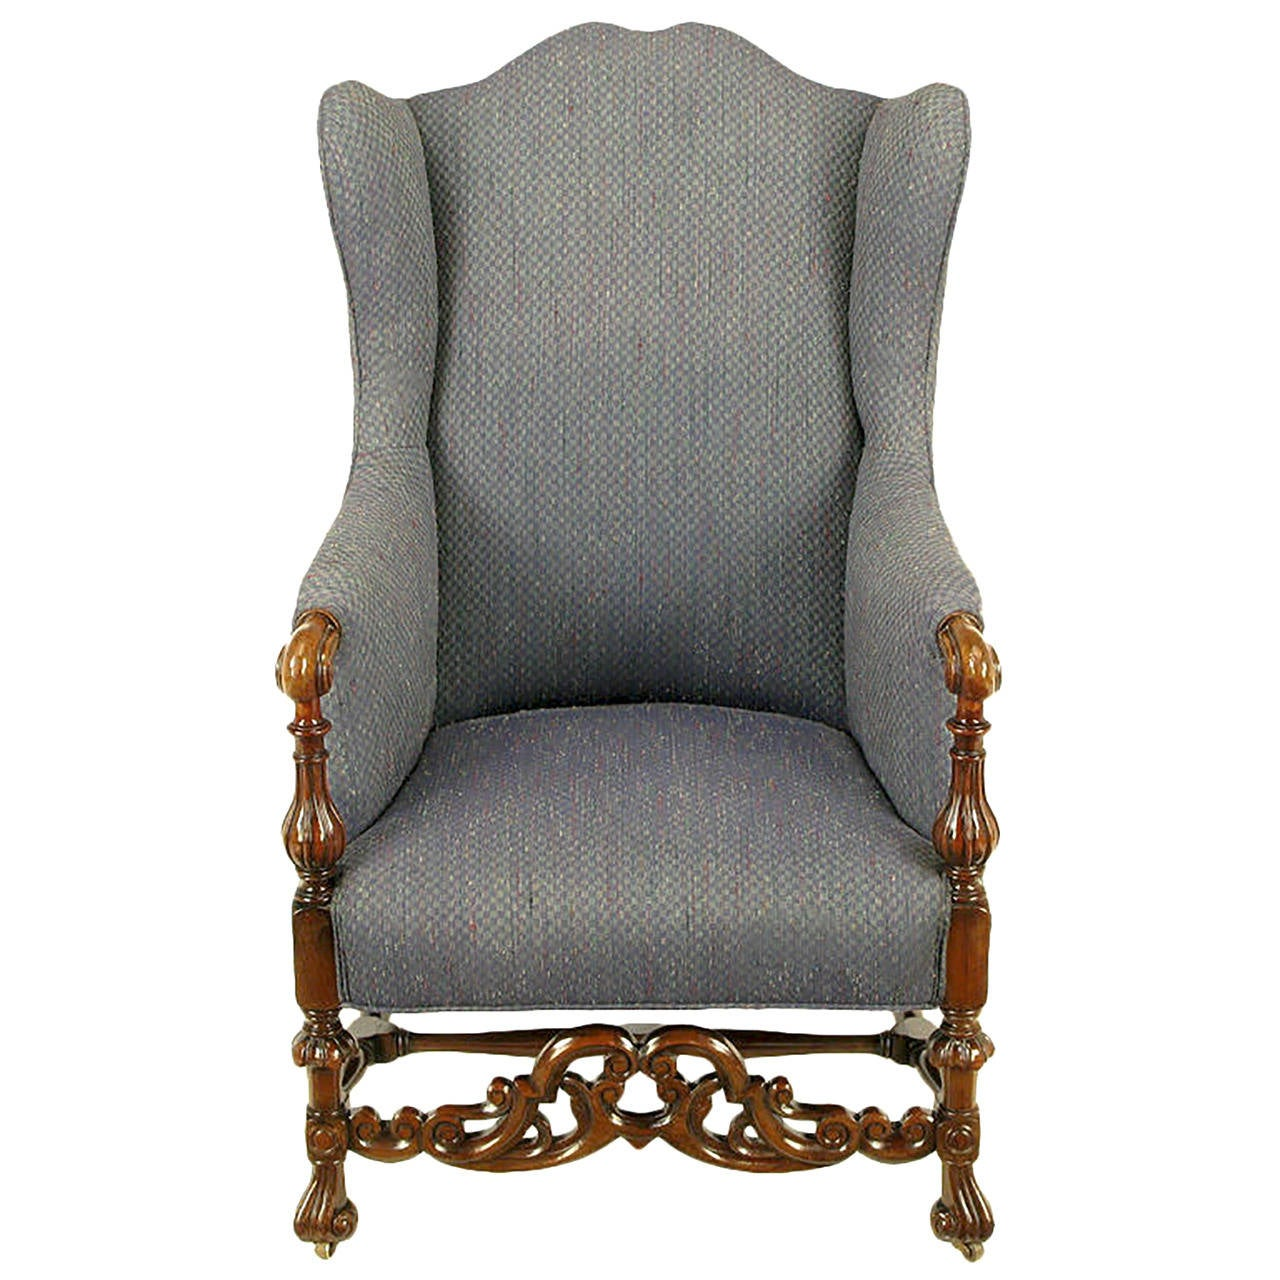 wingback chair. Italian Regency Upholstered Wing Chair With Carved Wood Frame For Sale Wingback